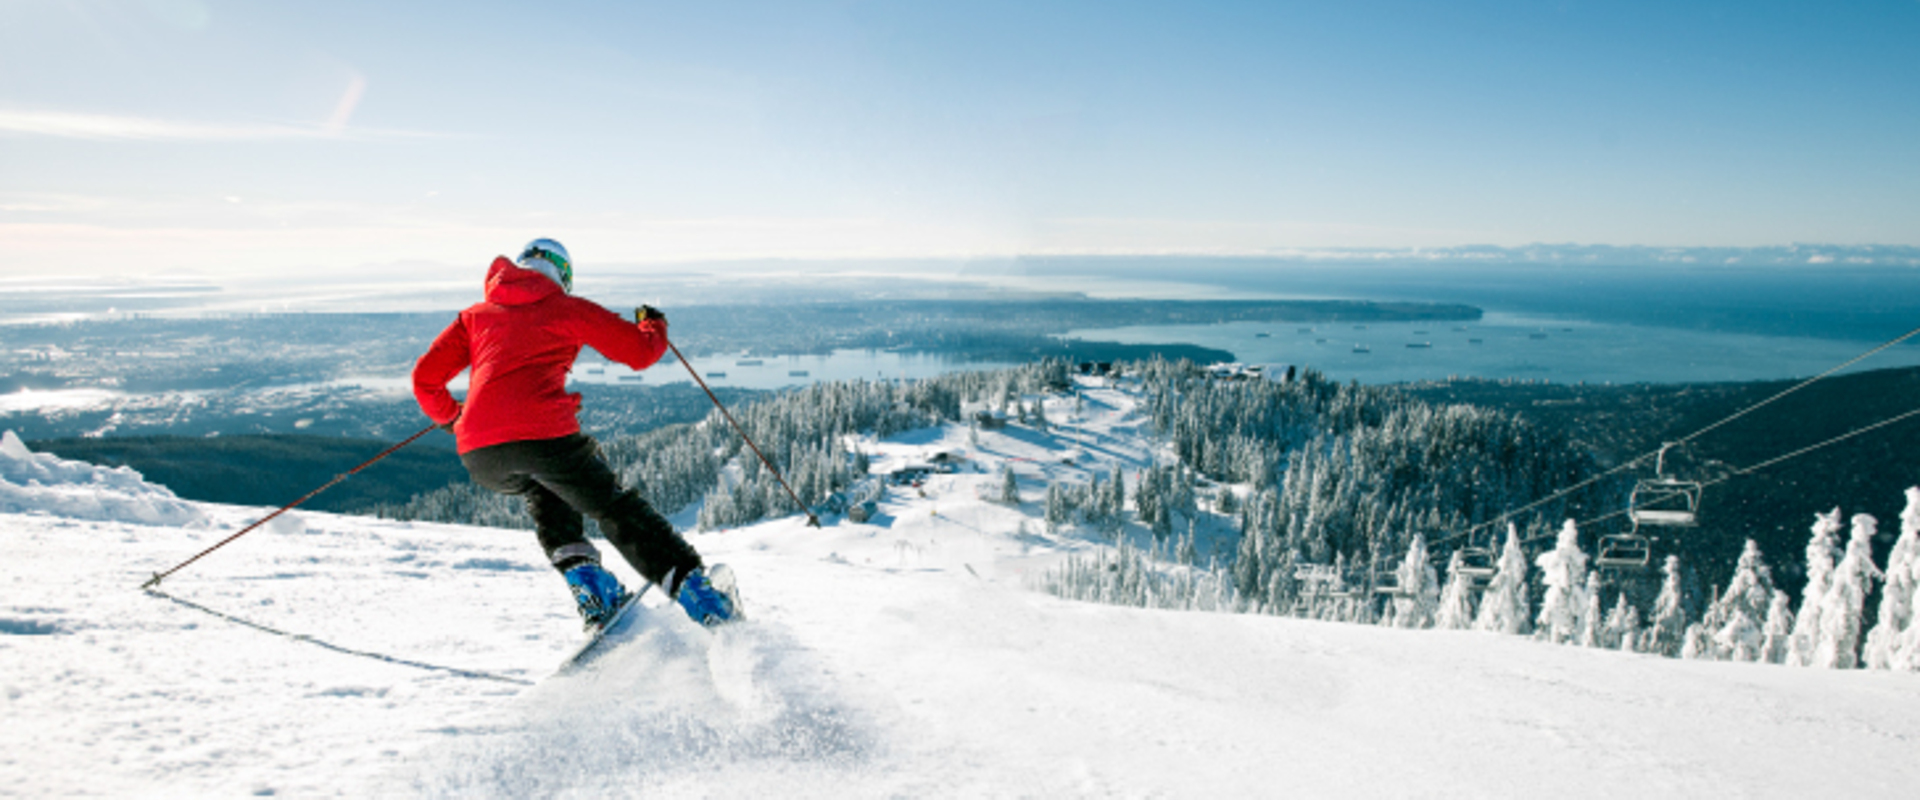 Grouse Mountain Launches 2017/18 Early Bird Winter Pass